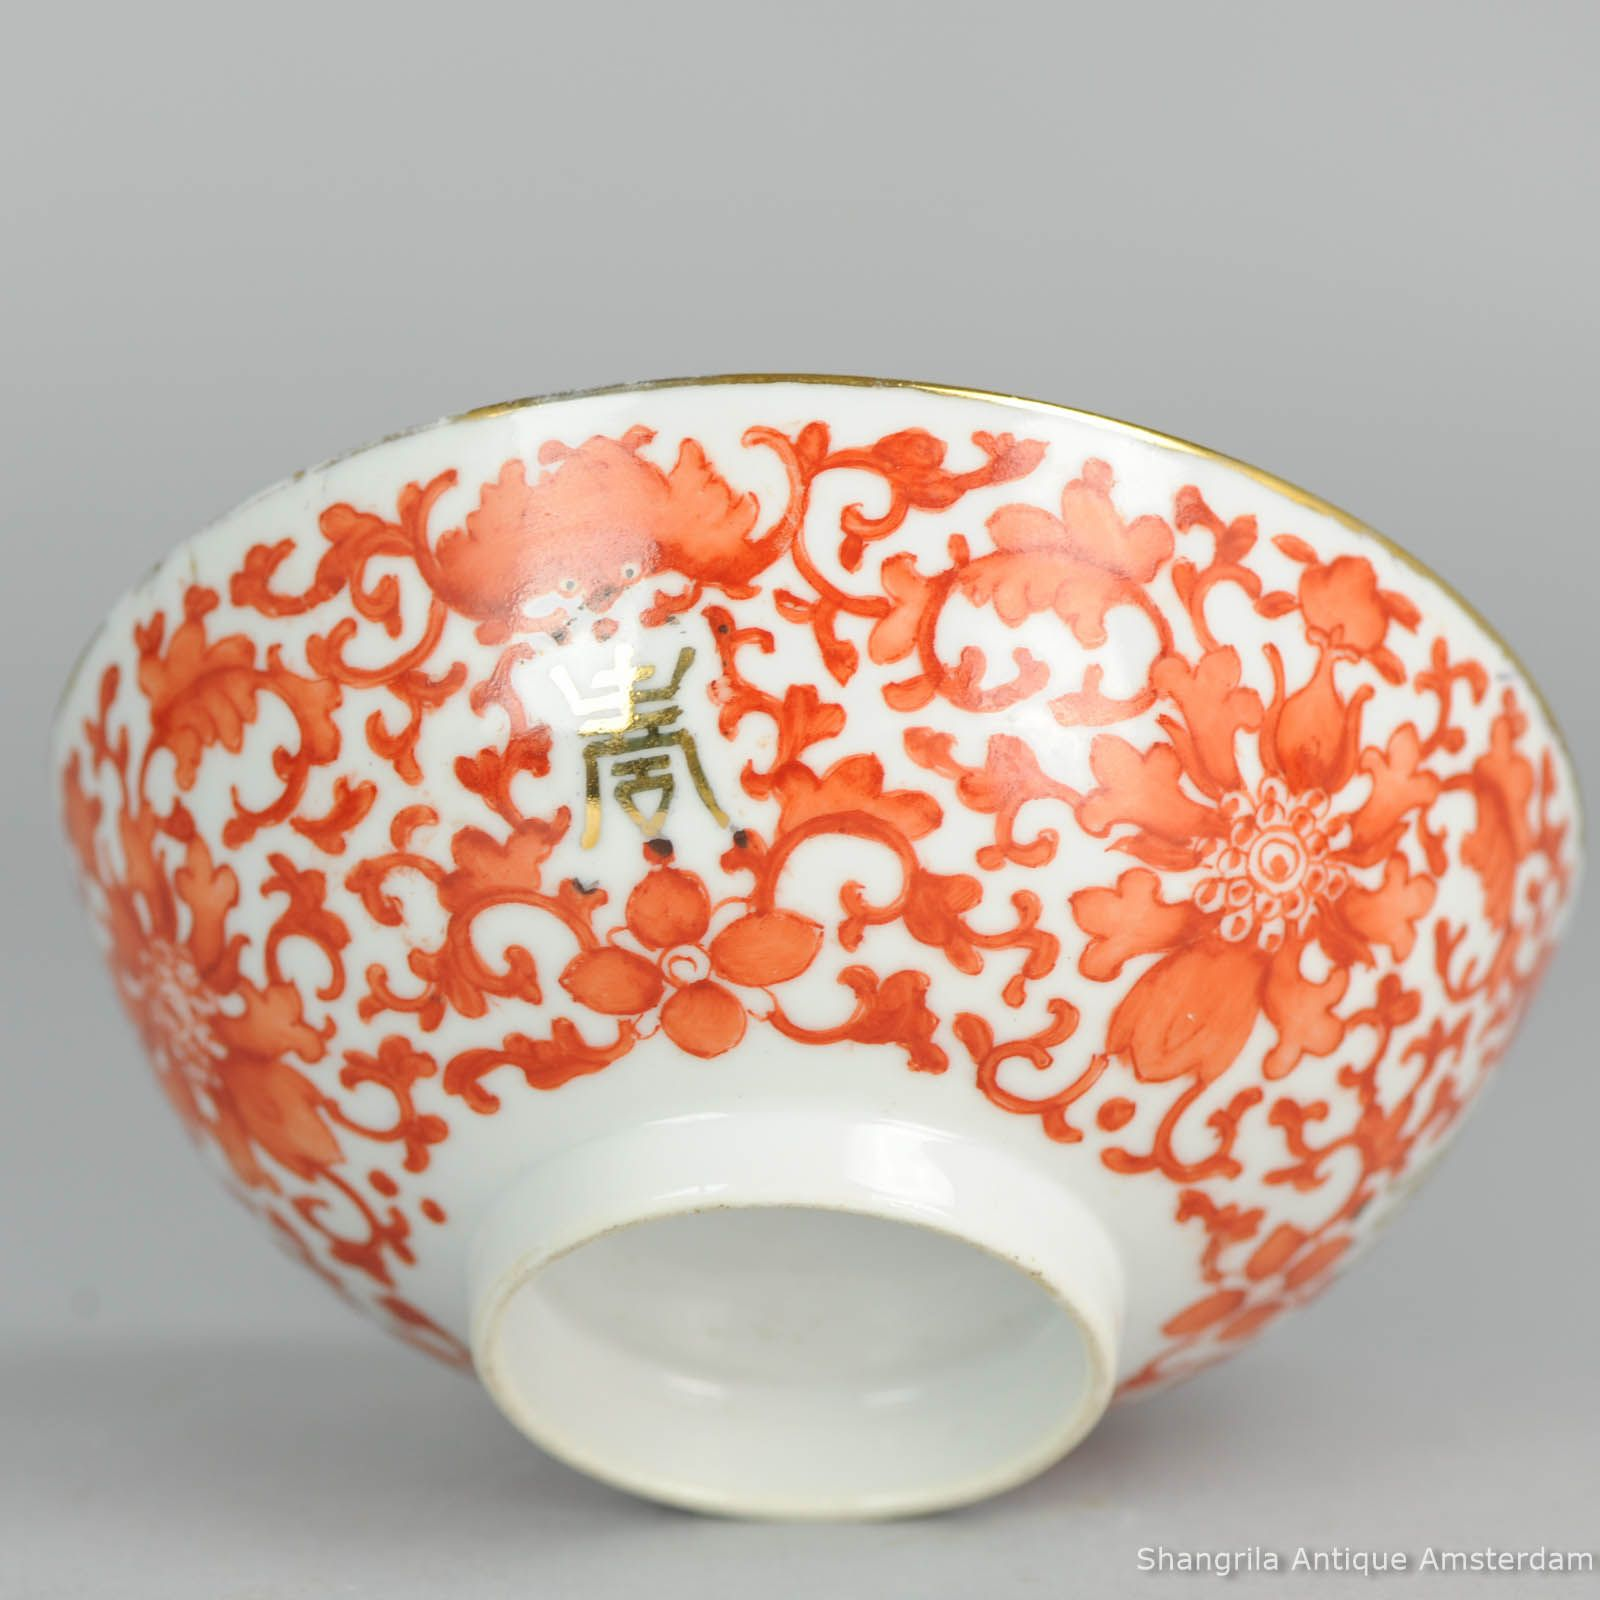 C Chinese Antique Porcelain Bowl Orange Bats Flowers Lovely